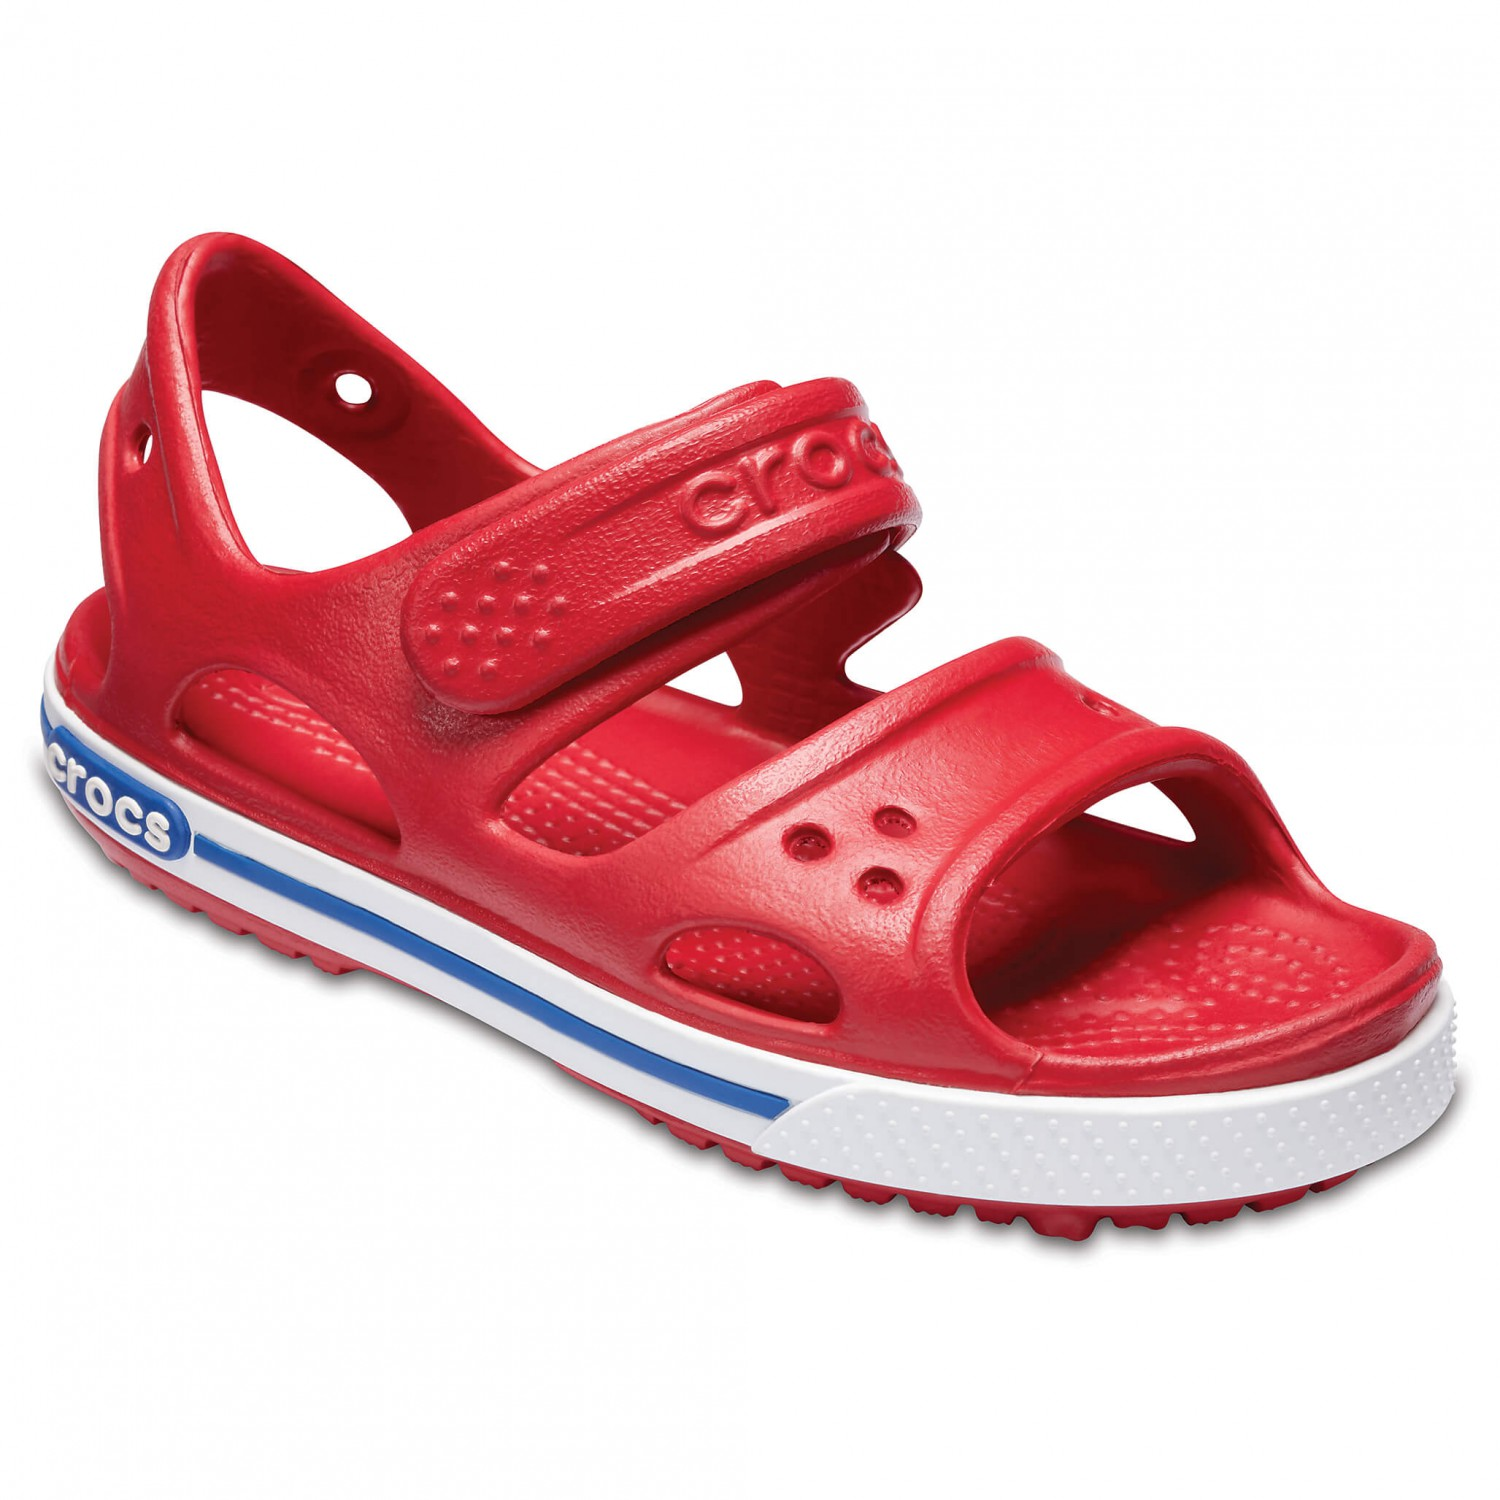 ff6be109a Crocs - Kid s Crocband II Sandal PS - Outdoor sandals ...